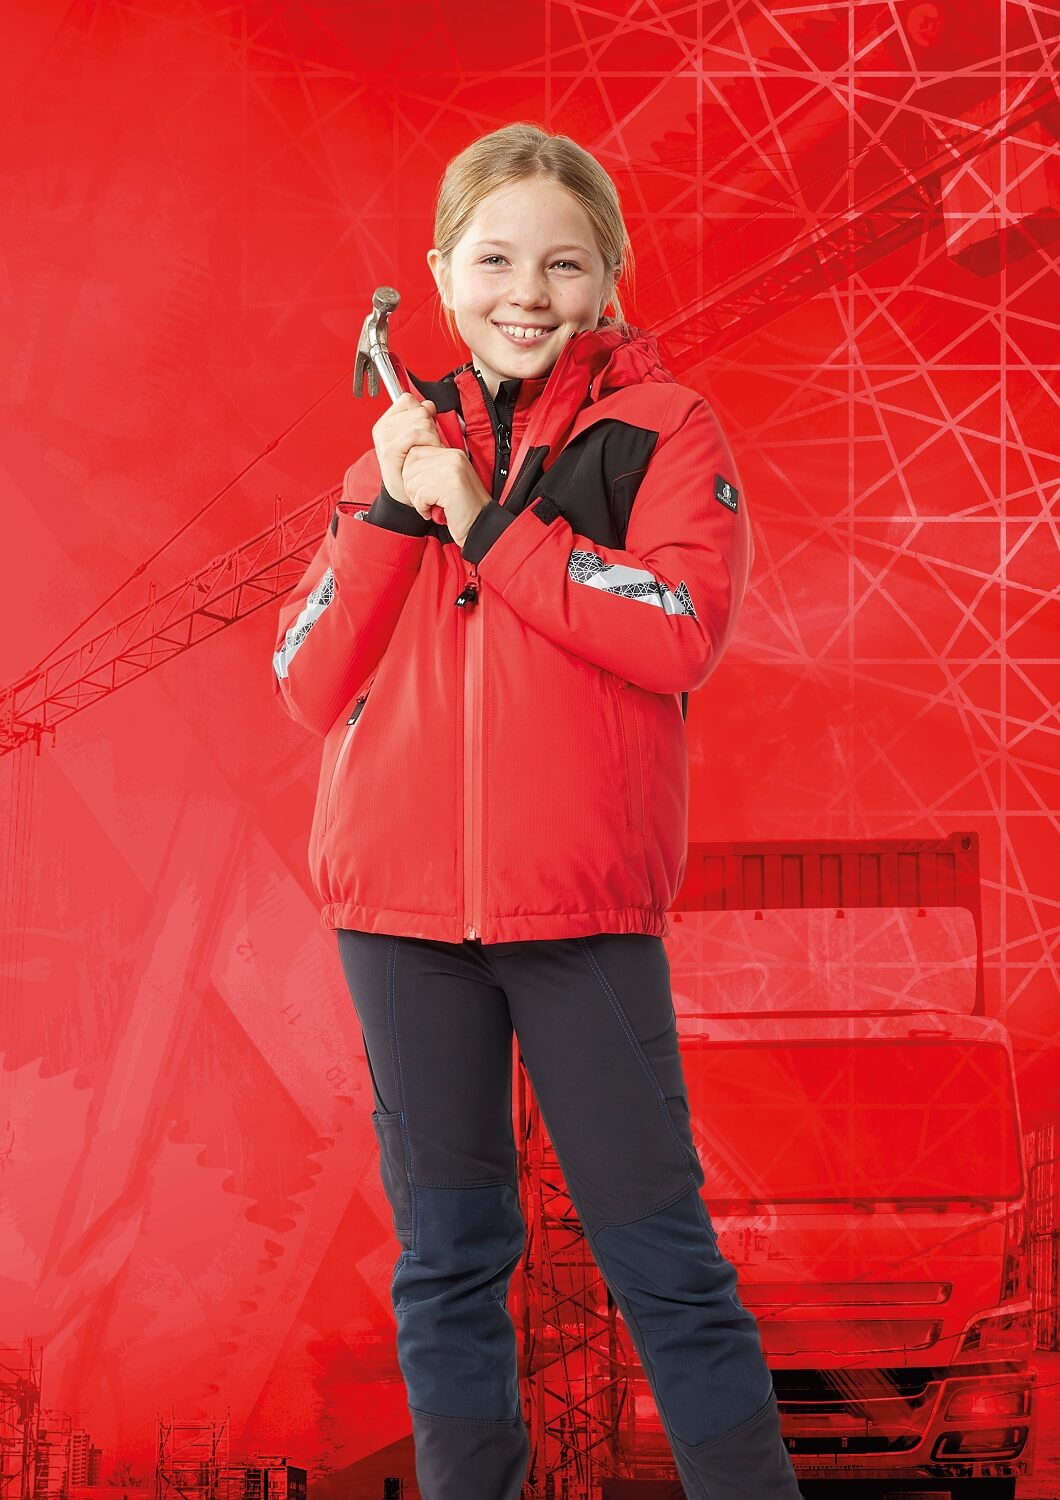 Jacket for children & Pants - Red & Black - MASCOT® ACCELERATE